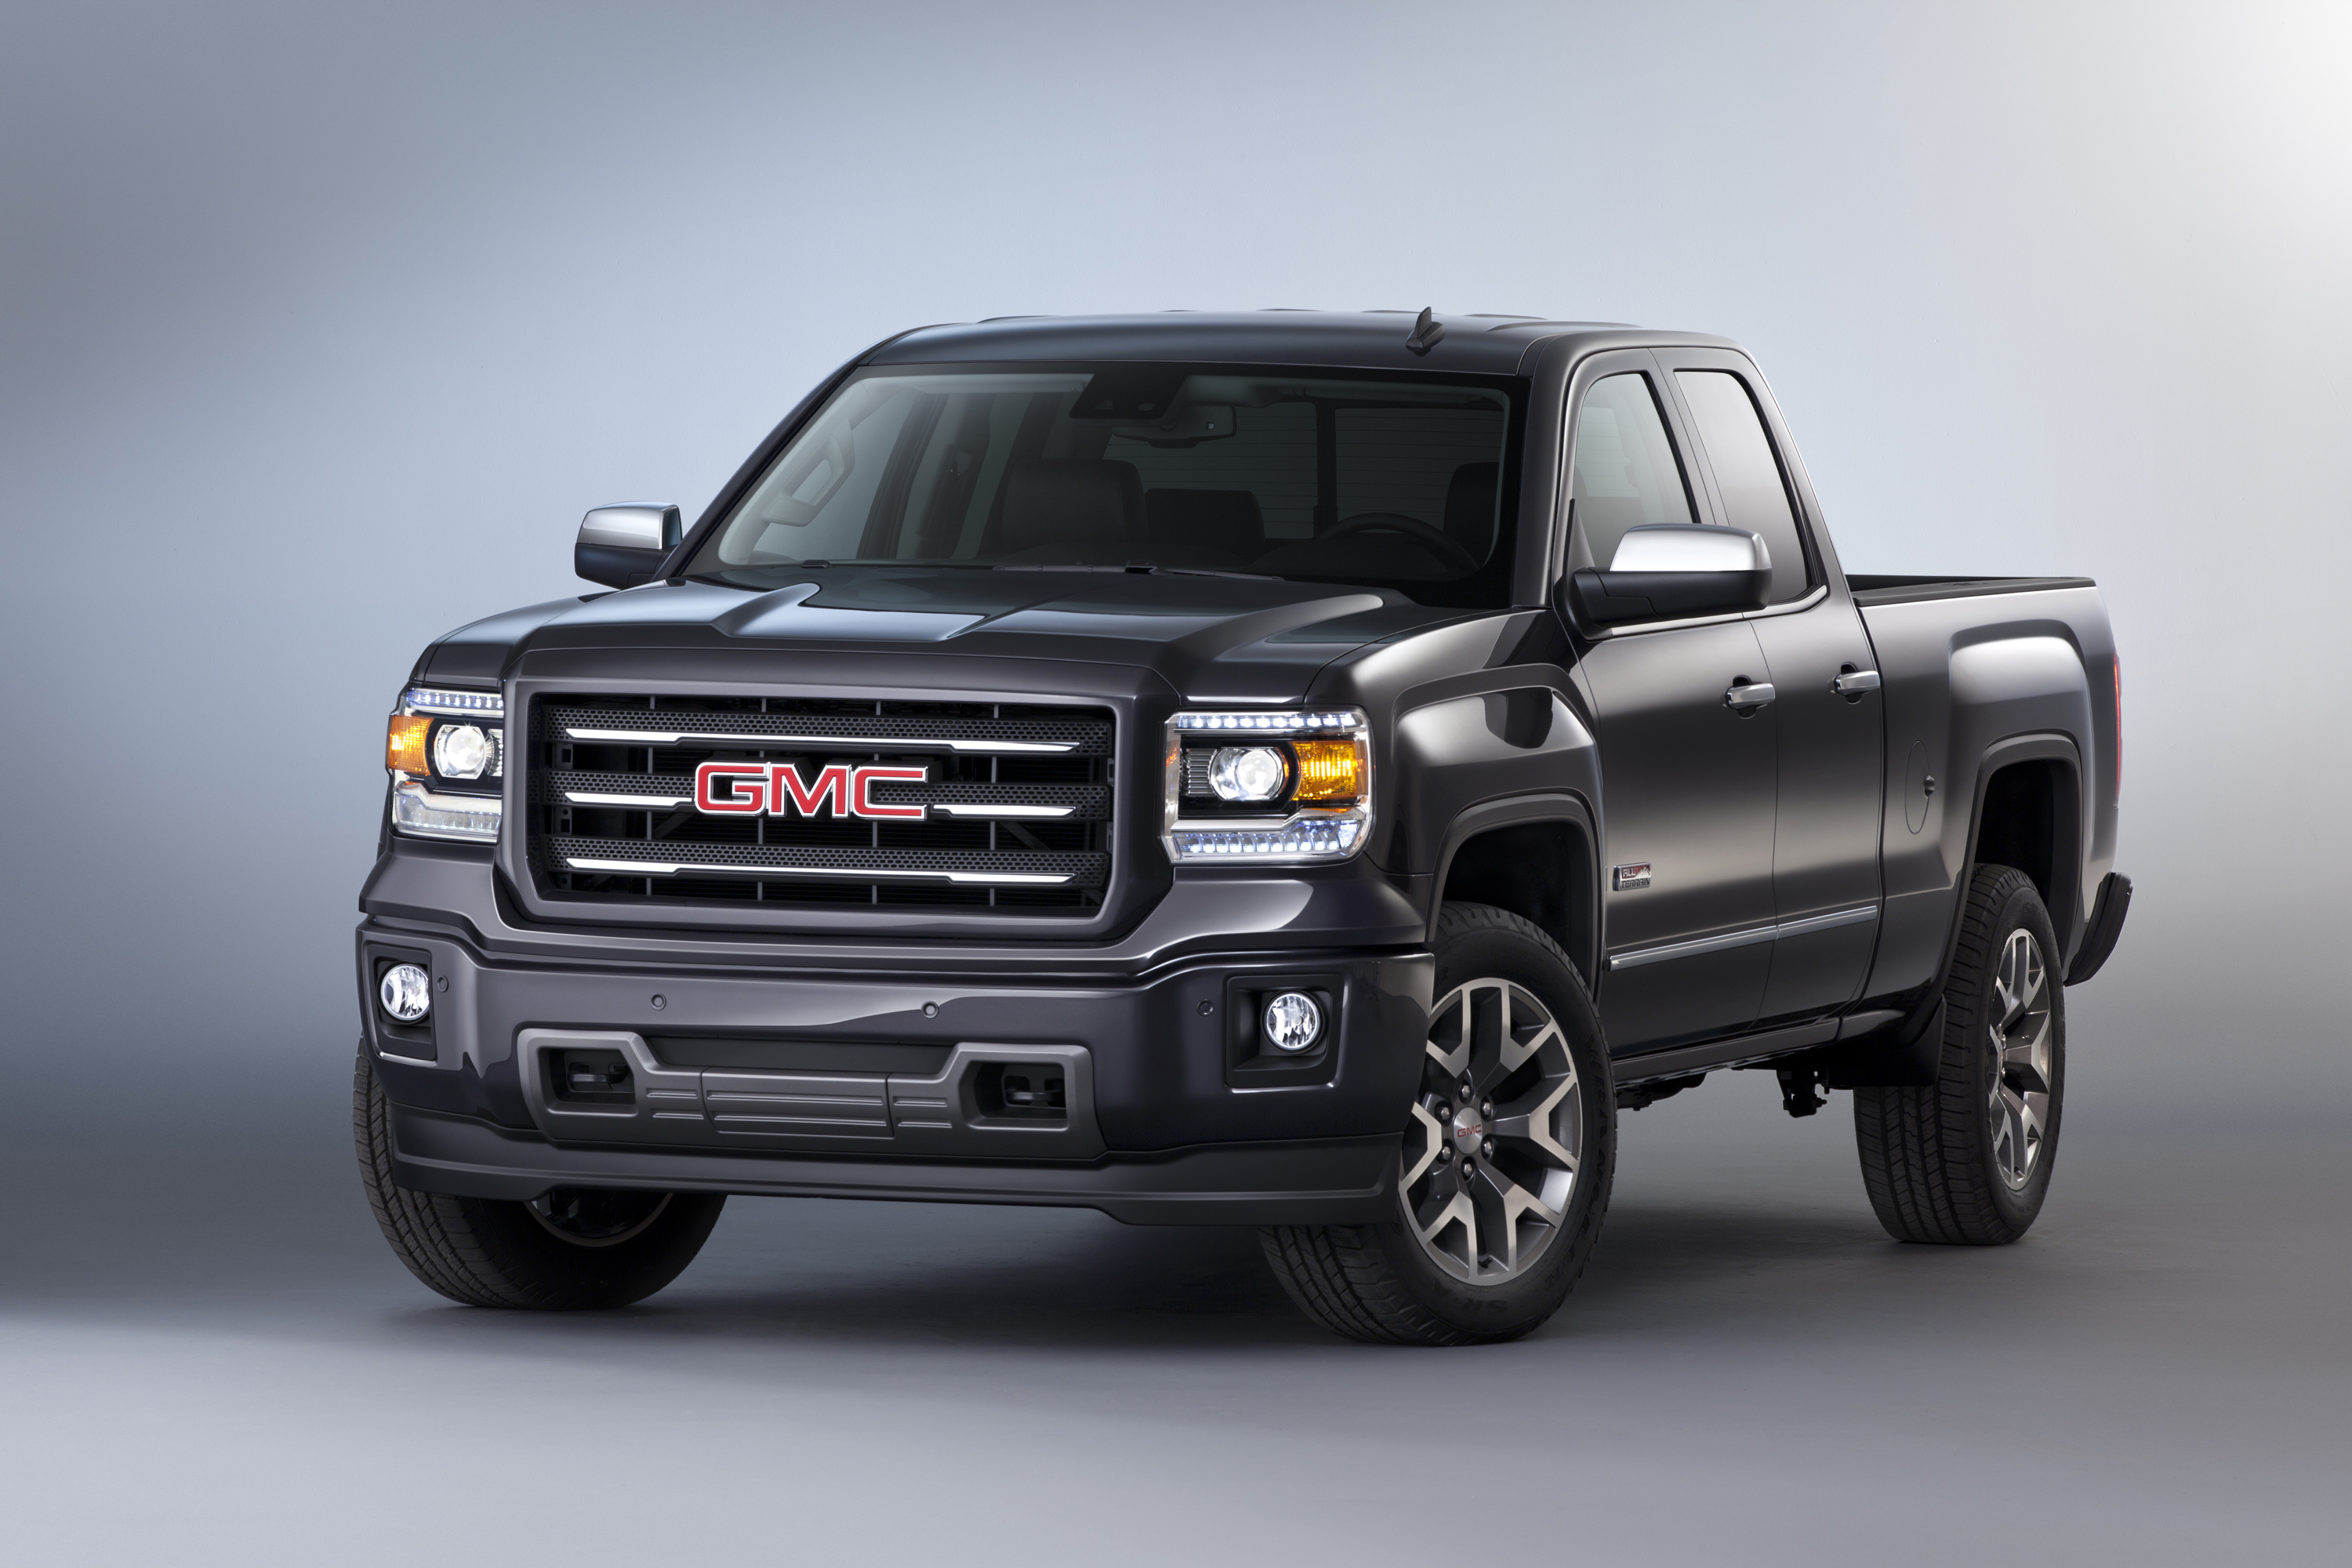 2014 GMC Sierra All Terrain on 2002 chevy impala engine diagram